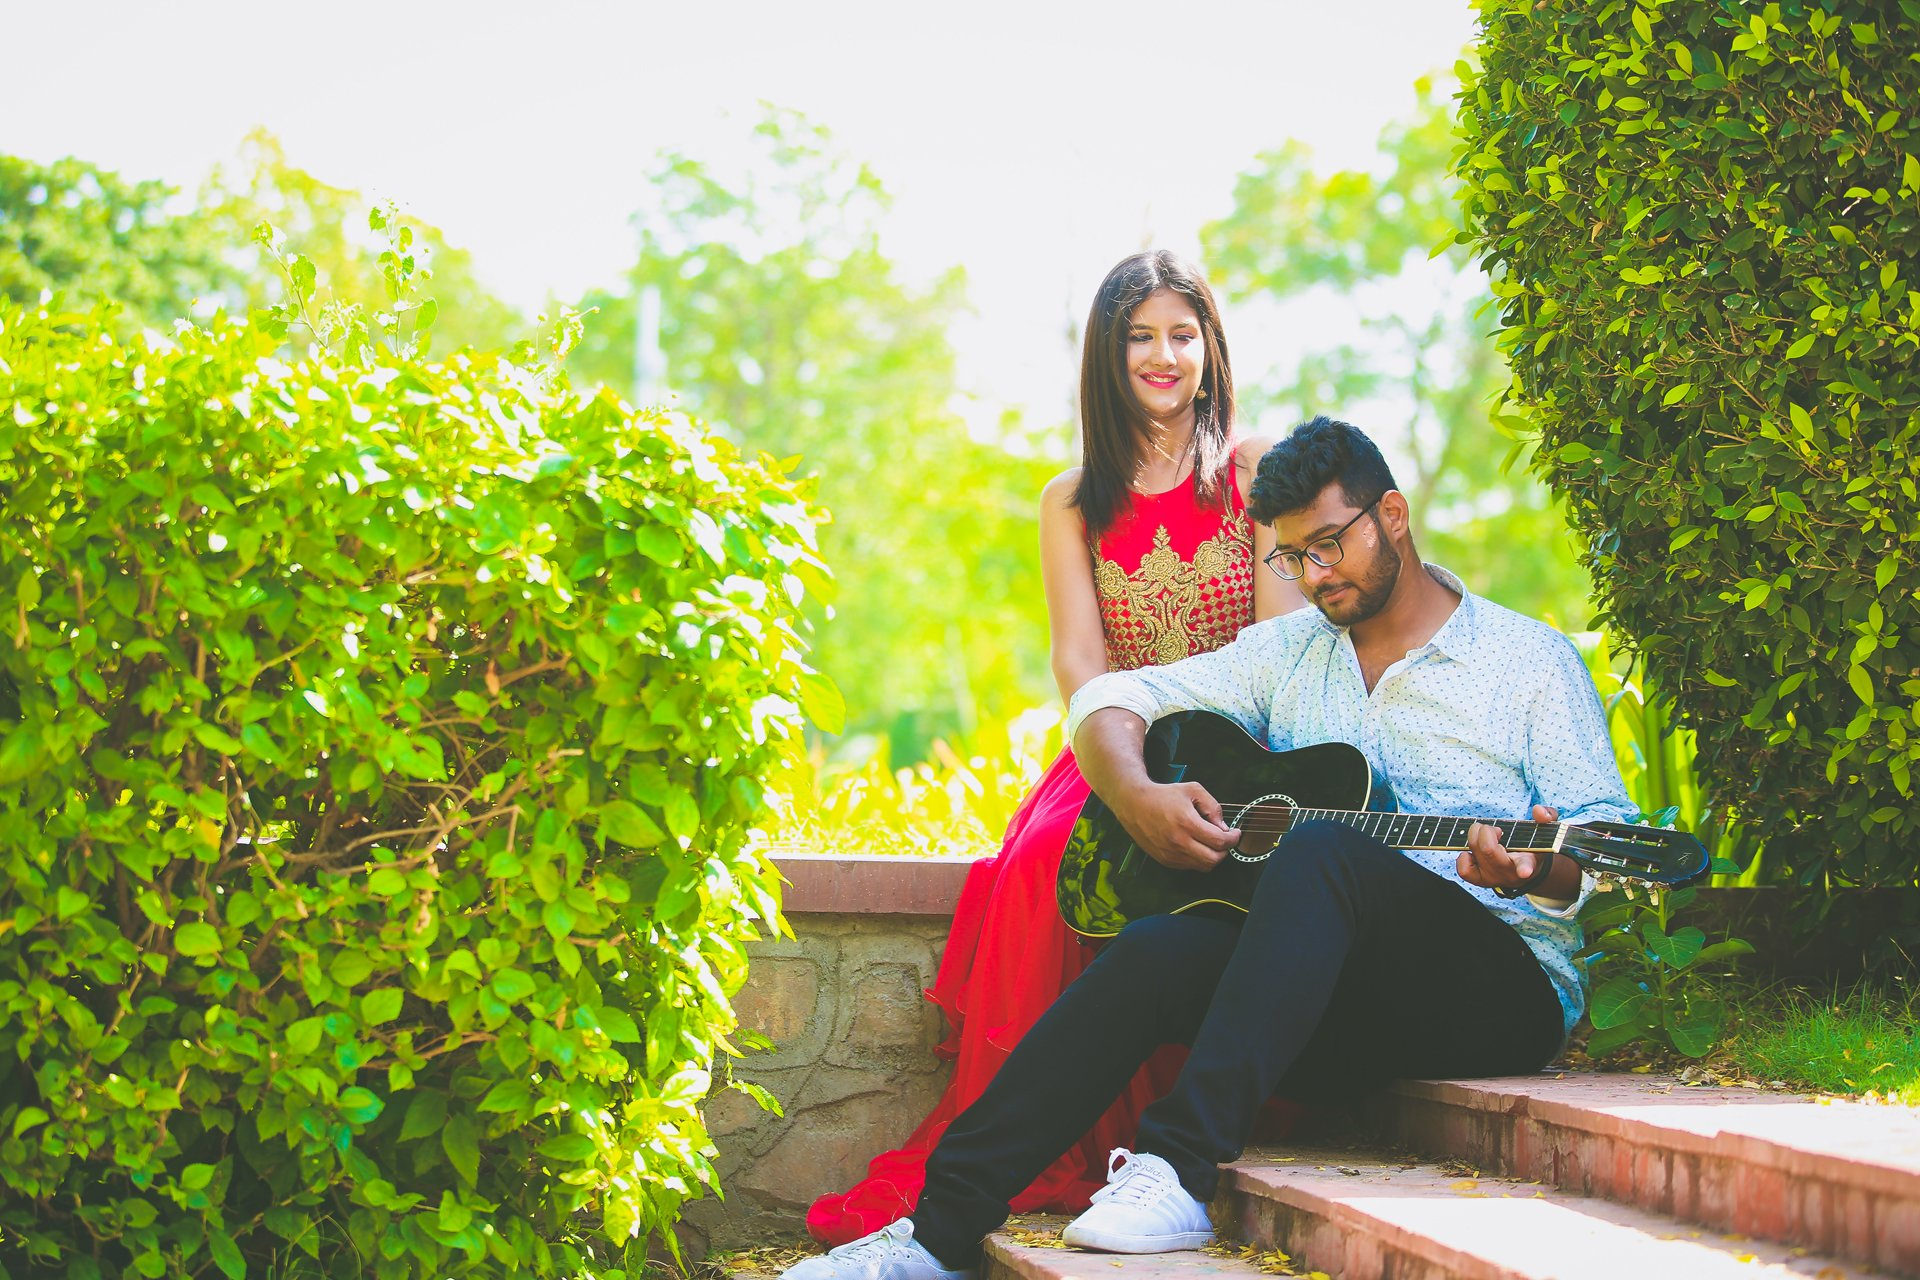 pre wedding photoshoot ideas india